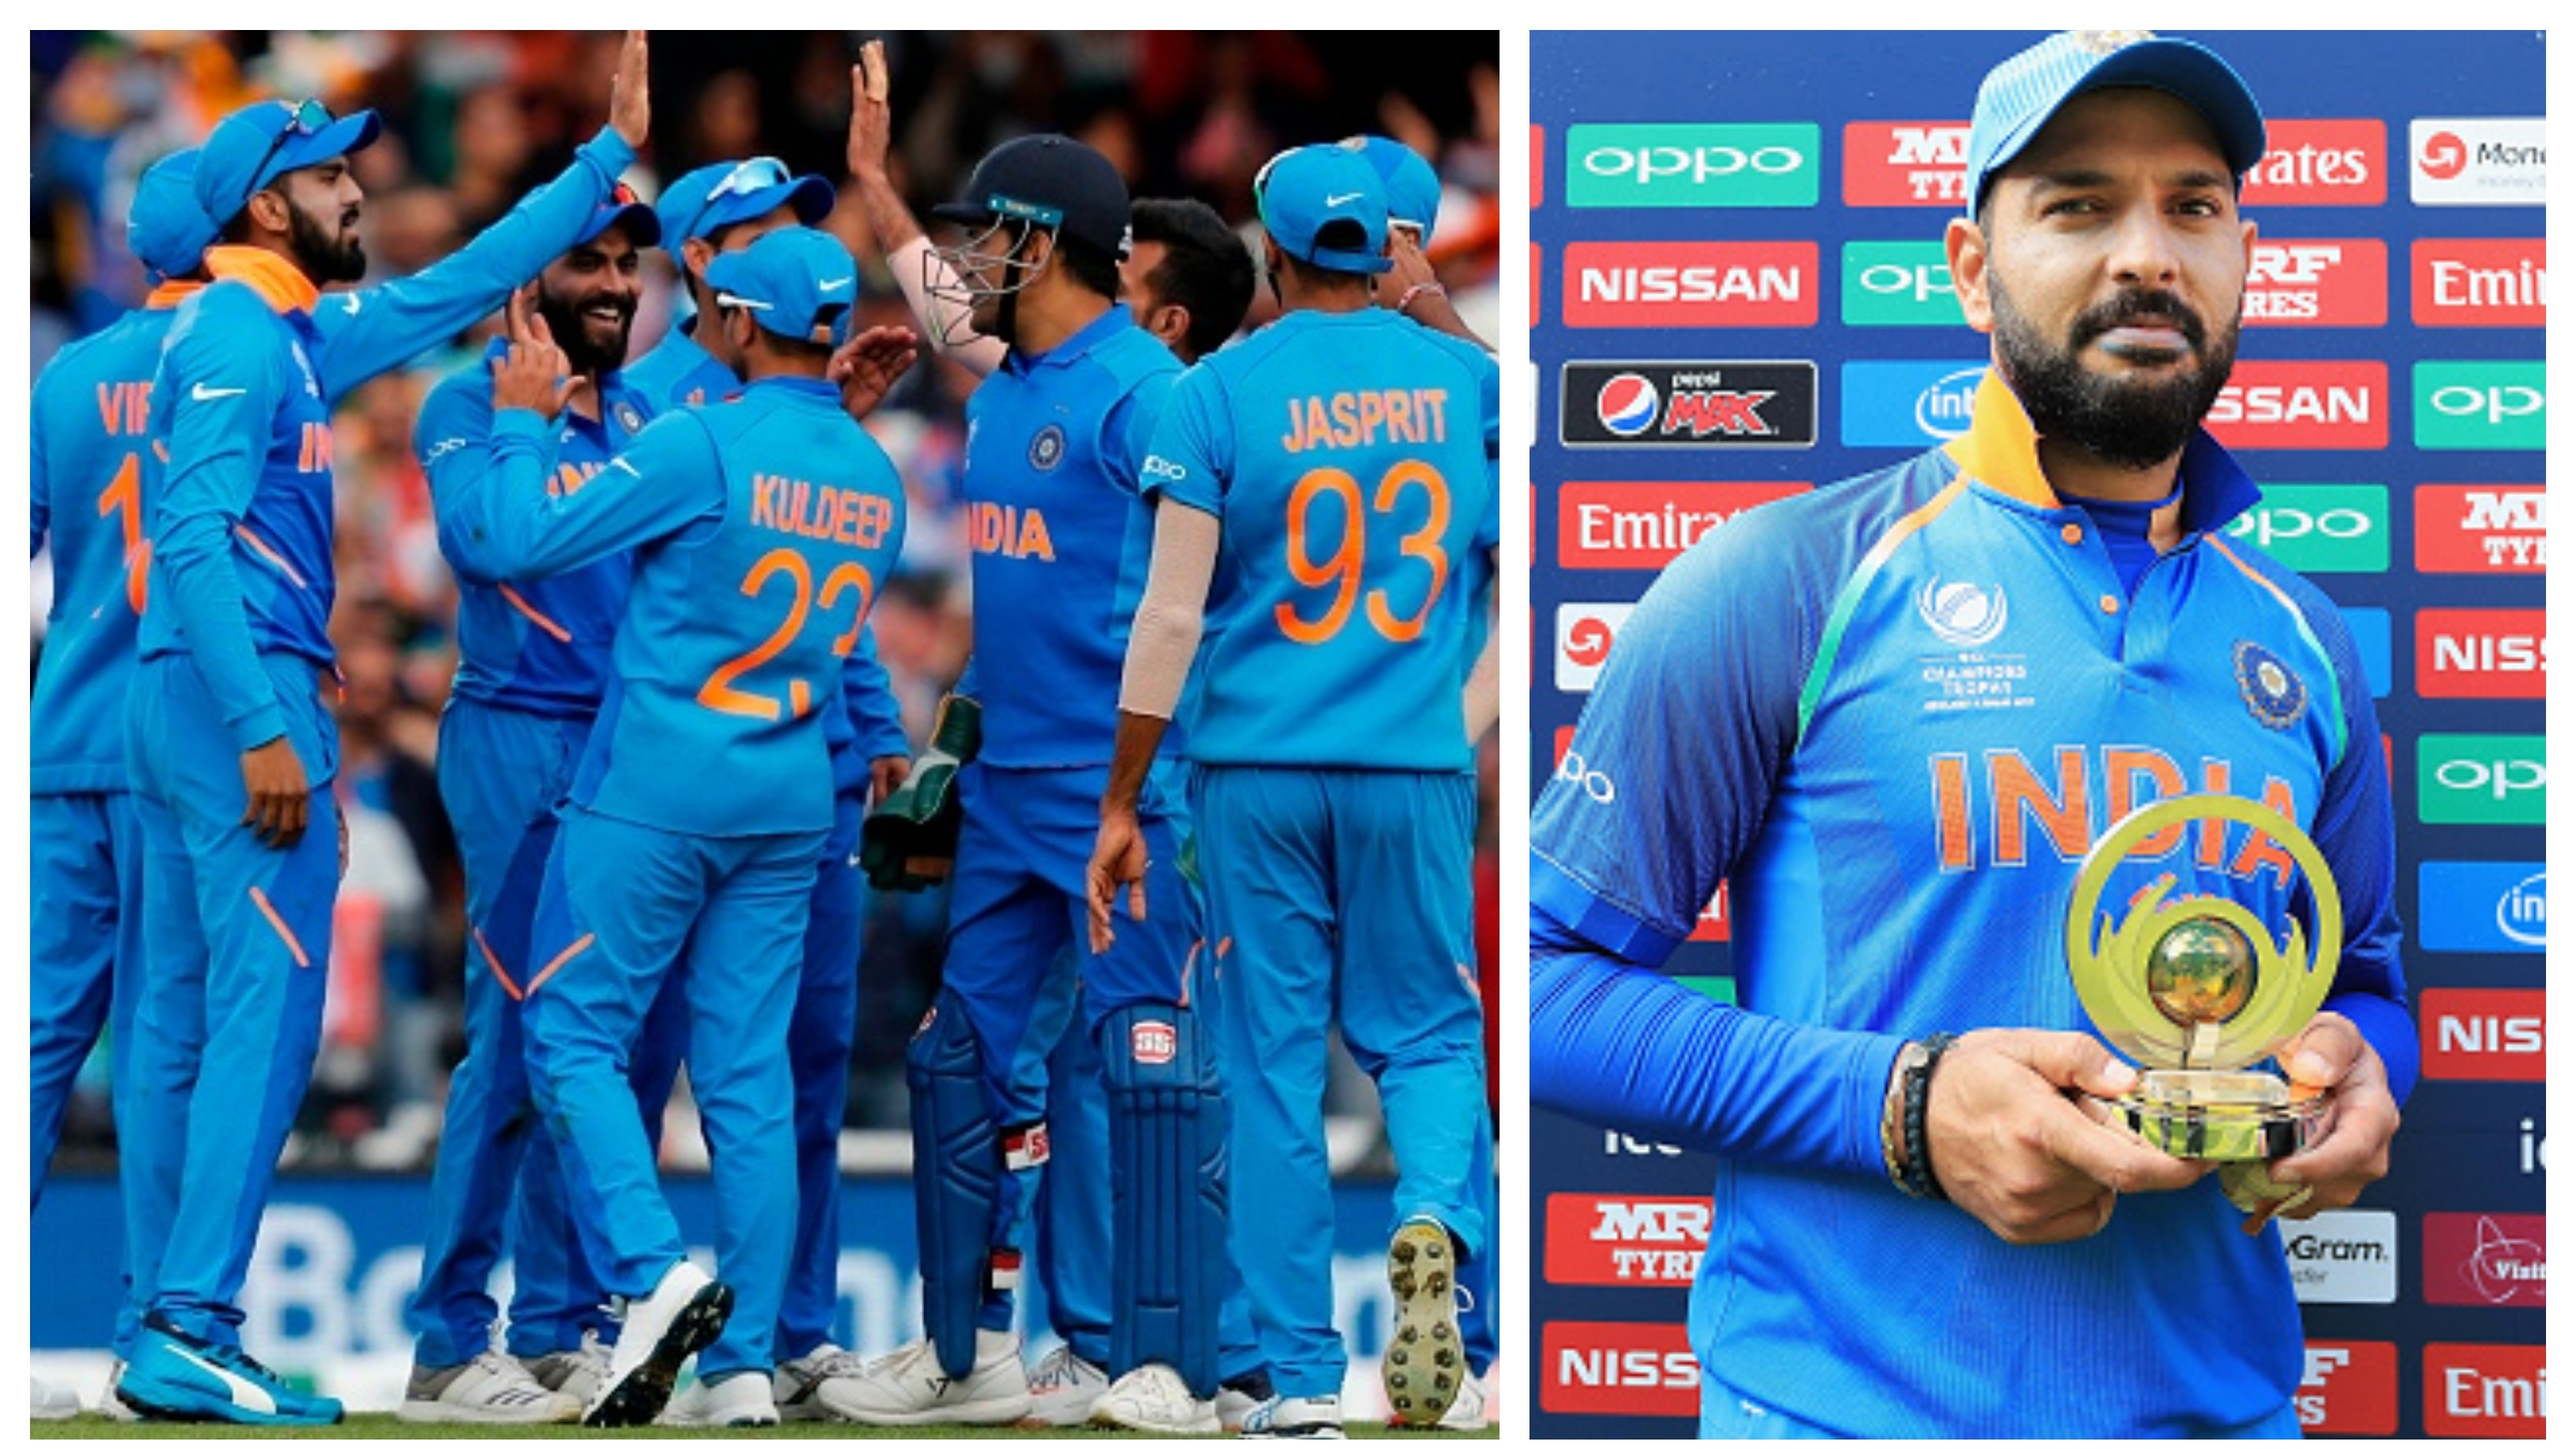 CWC 2019: Team India's World Cup-bound players congratulate Yuvraj Singh on a stellar career